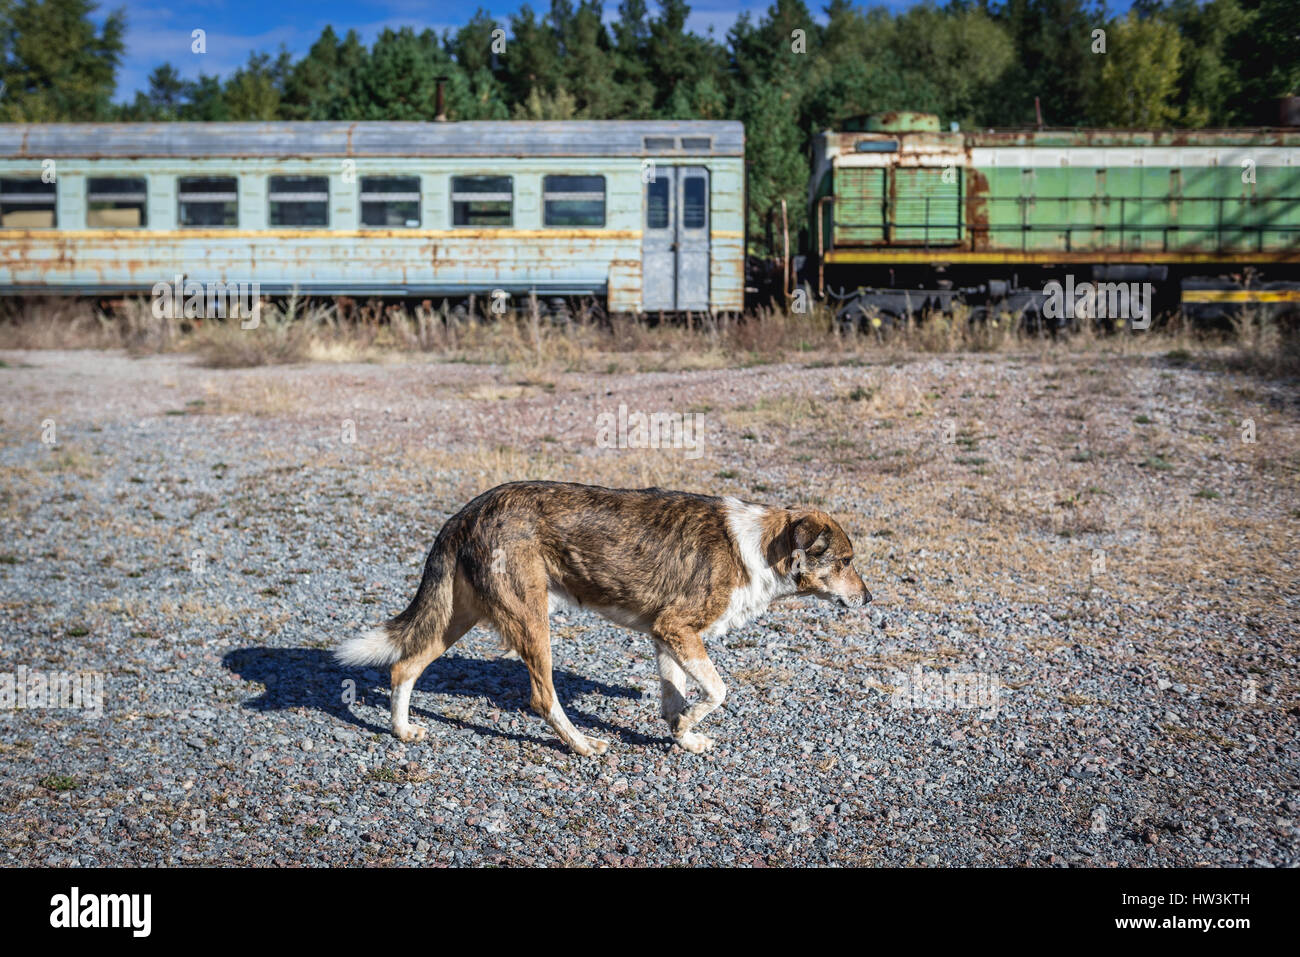 Old train in abandoned Yaniv town railway station, Chernobyl Nuclear Power Plant Zone of Alienation around the nuclear - Stock Image